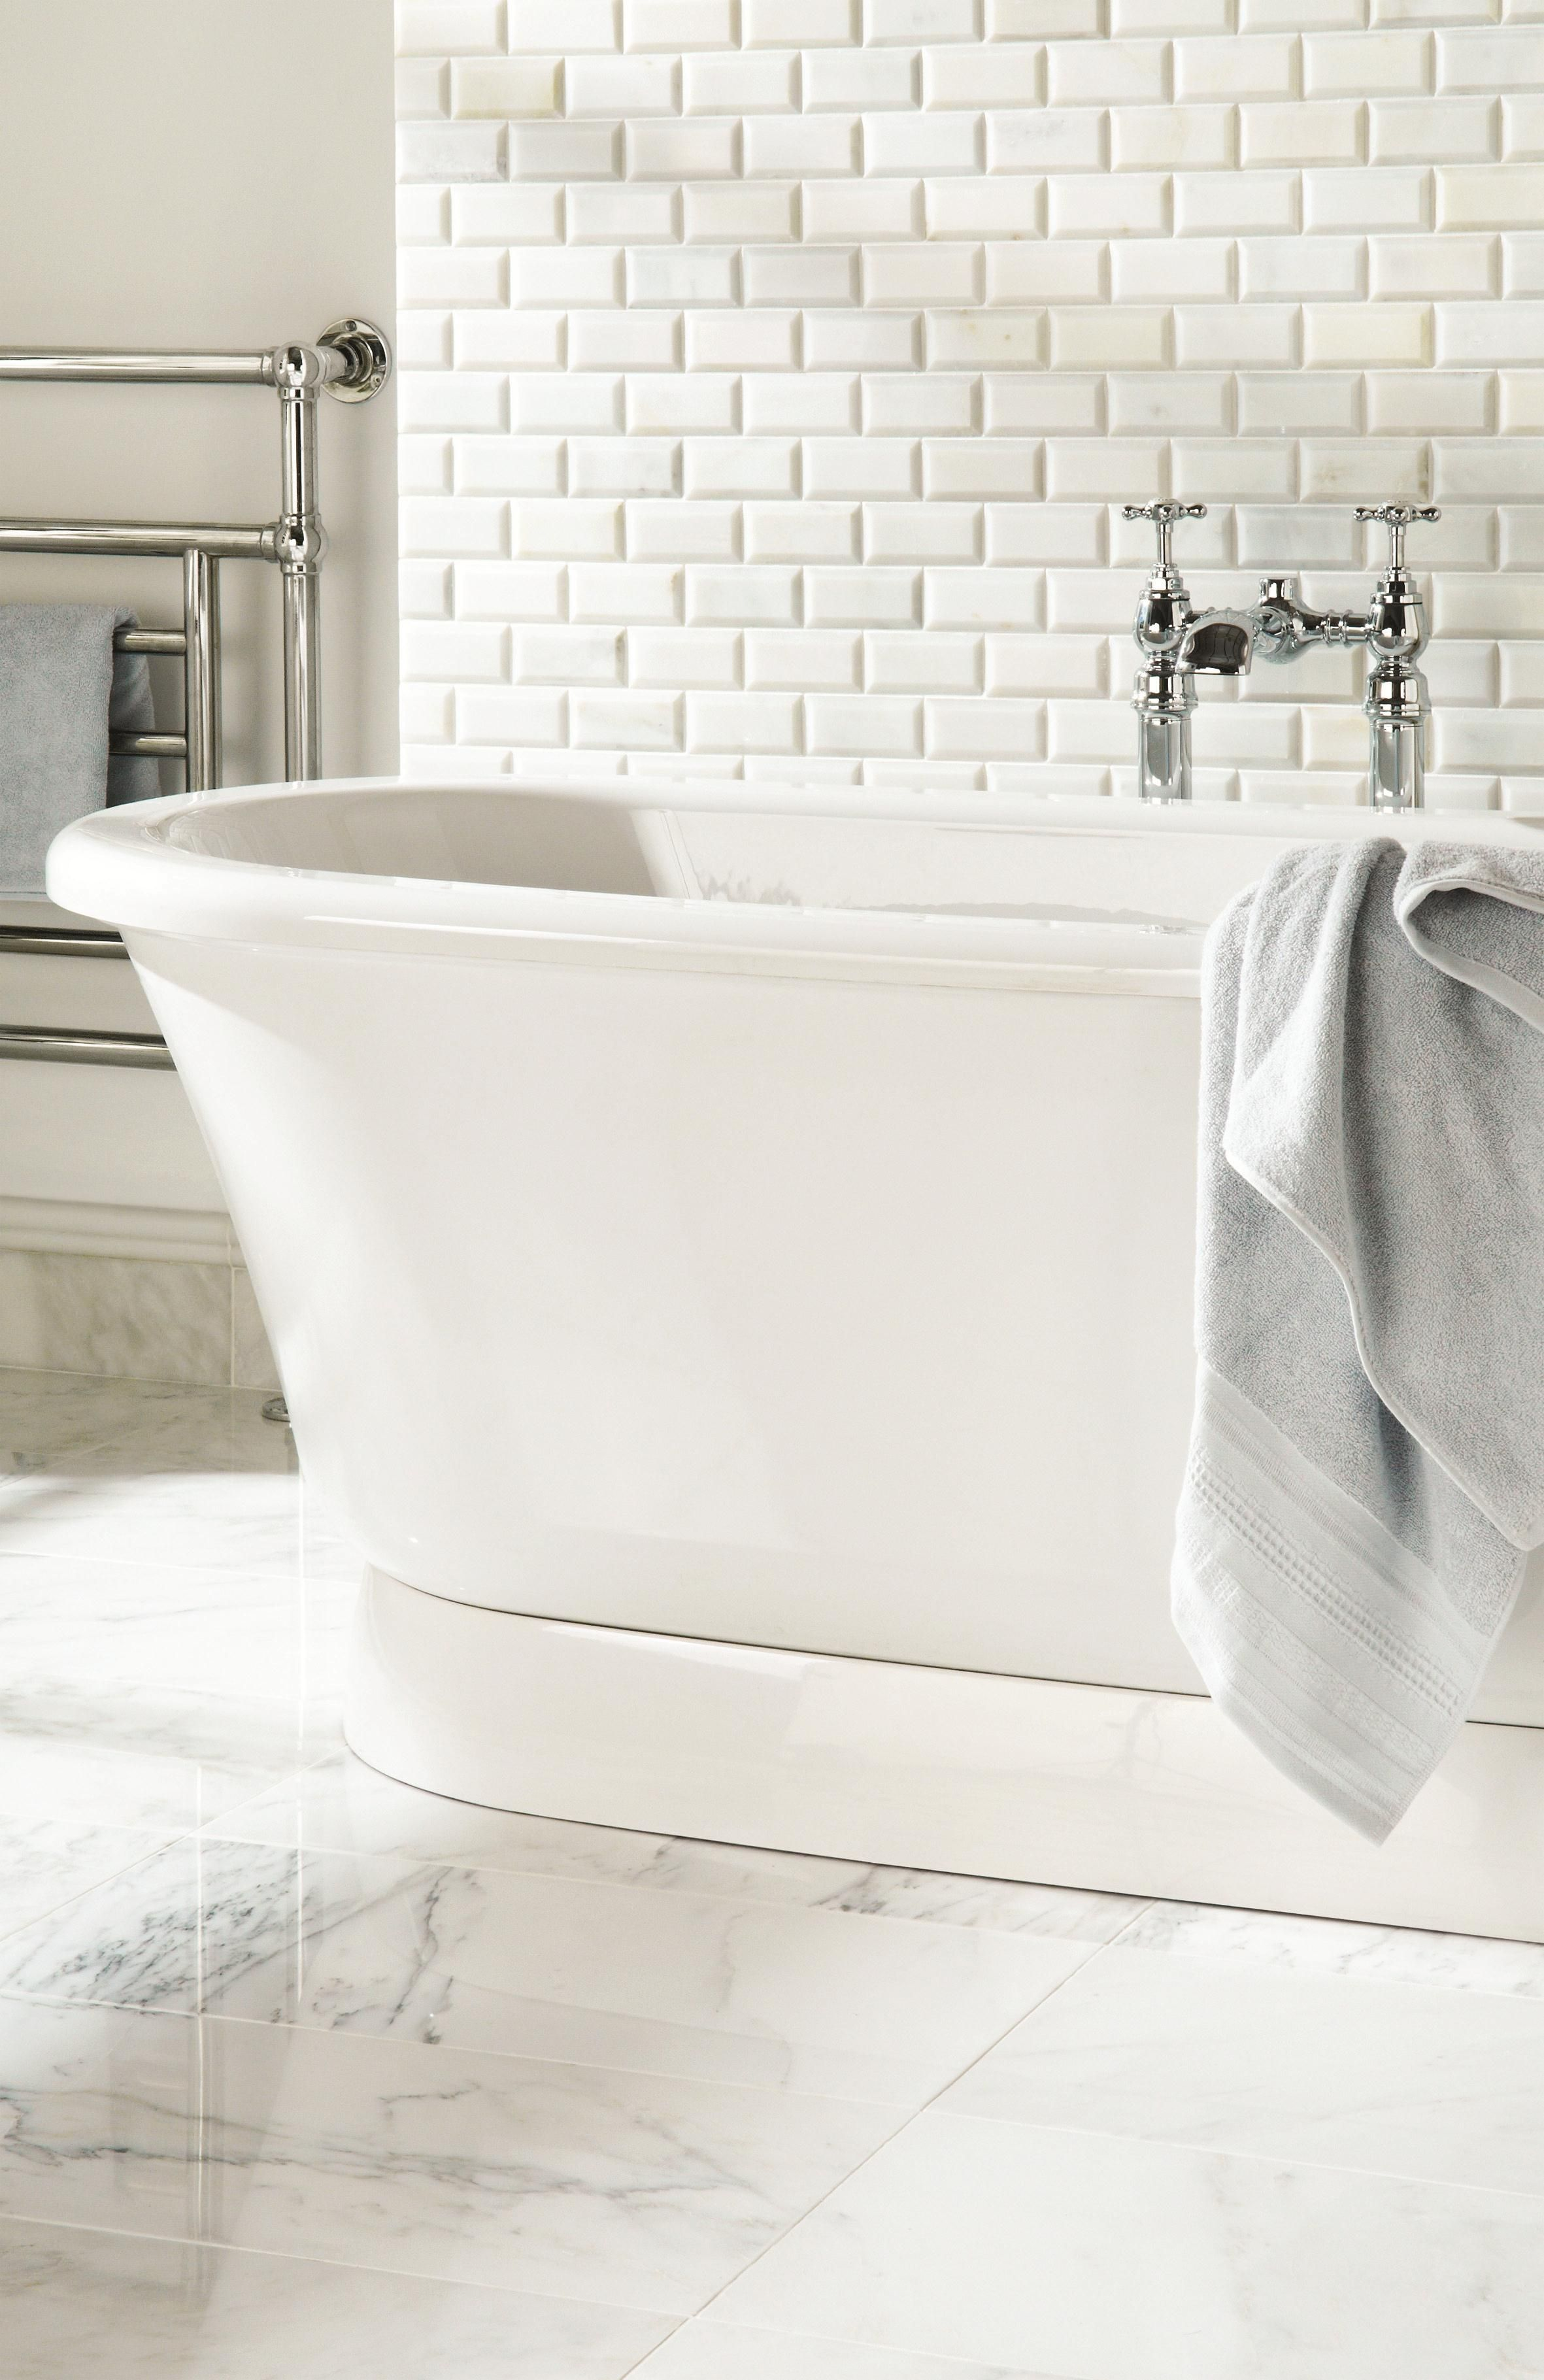 Original Style - Earthworks - Viano white mixed marble | bathrooms ...